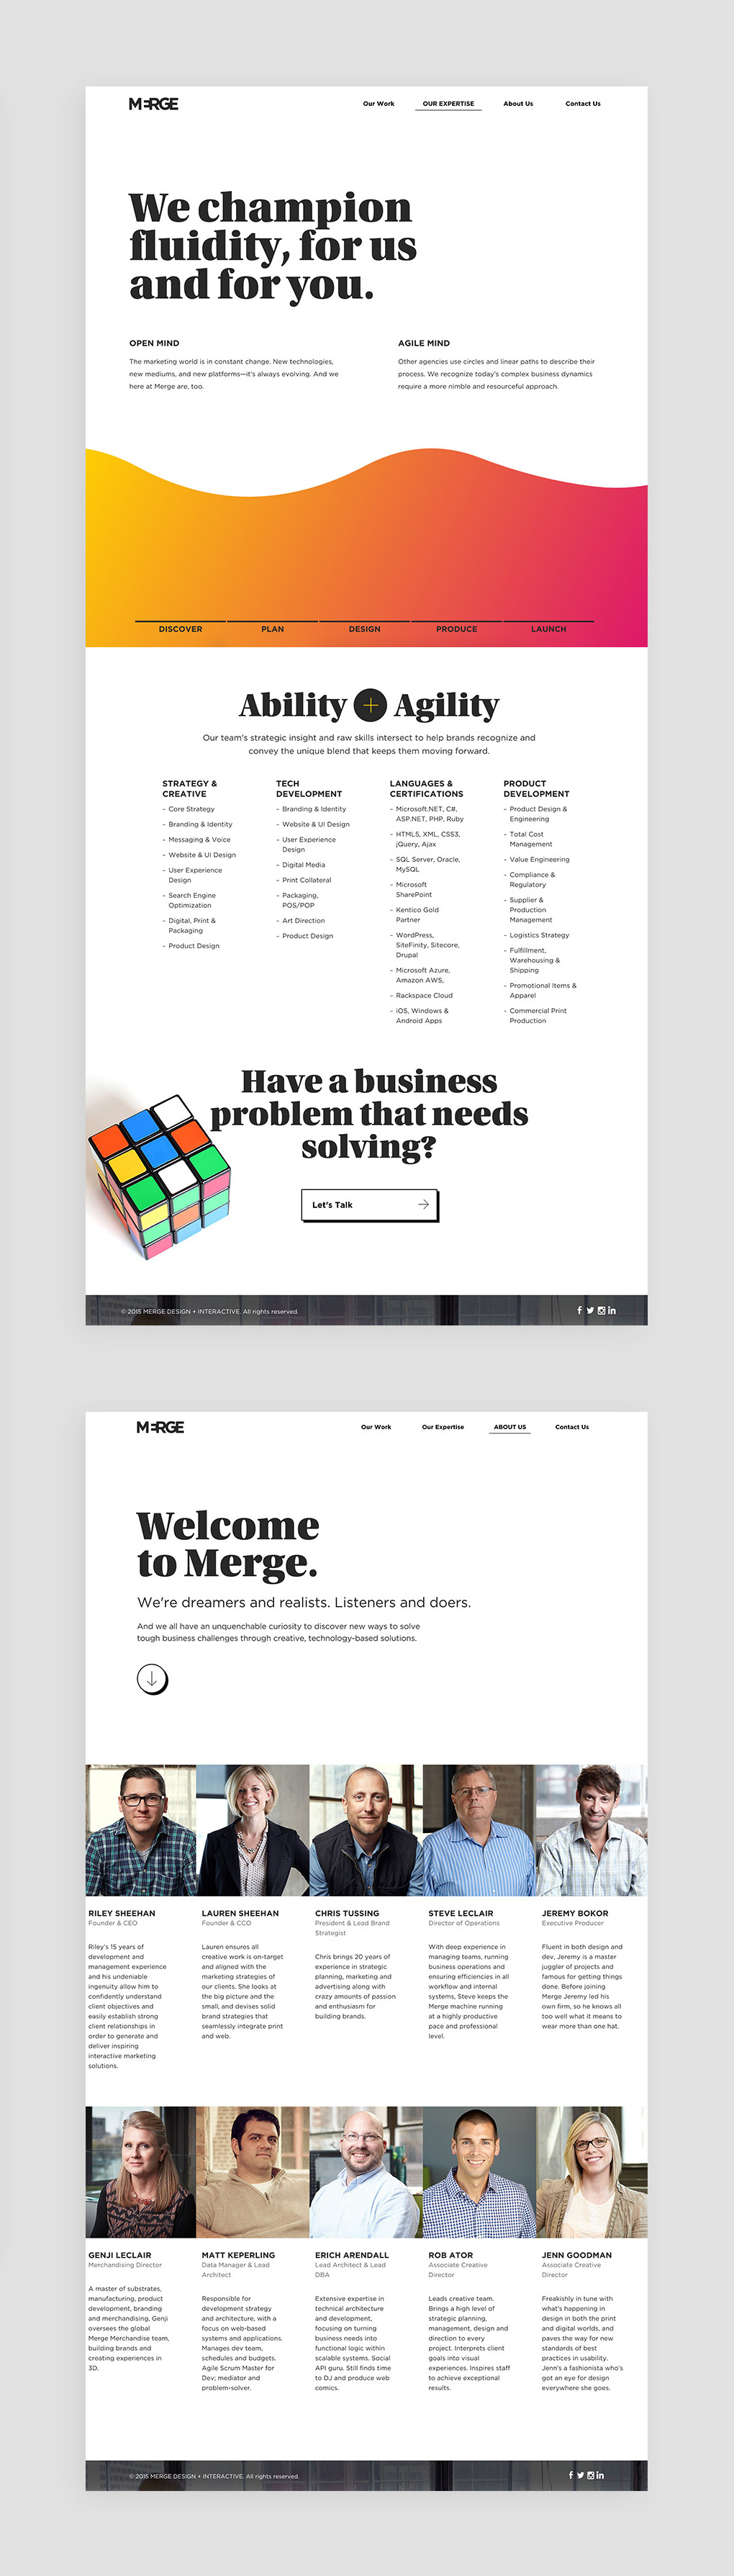 merge-layout-mobile-2